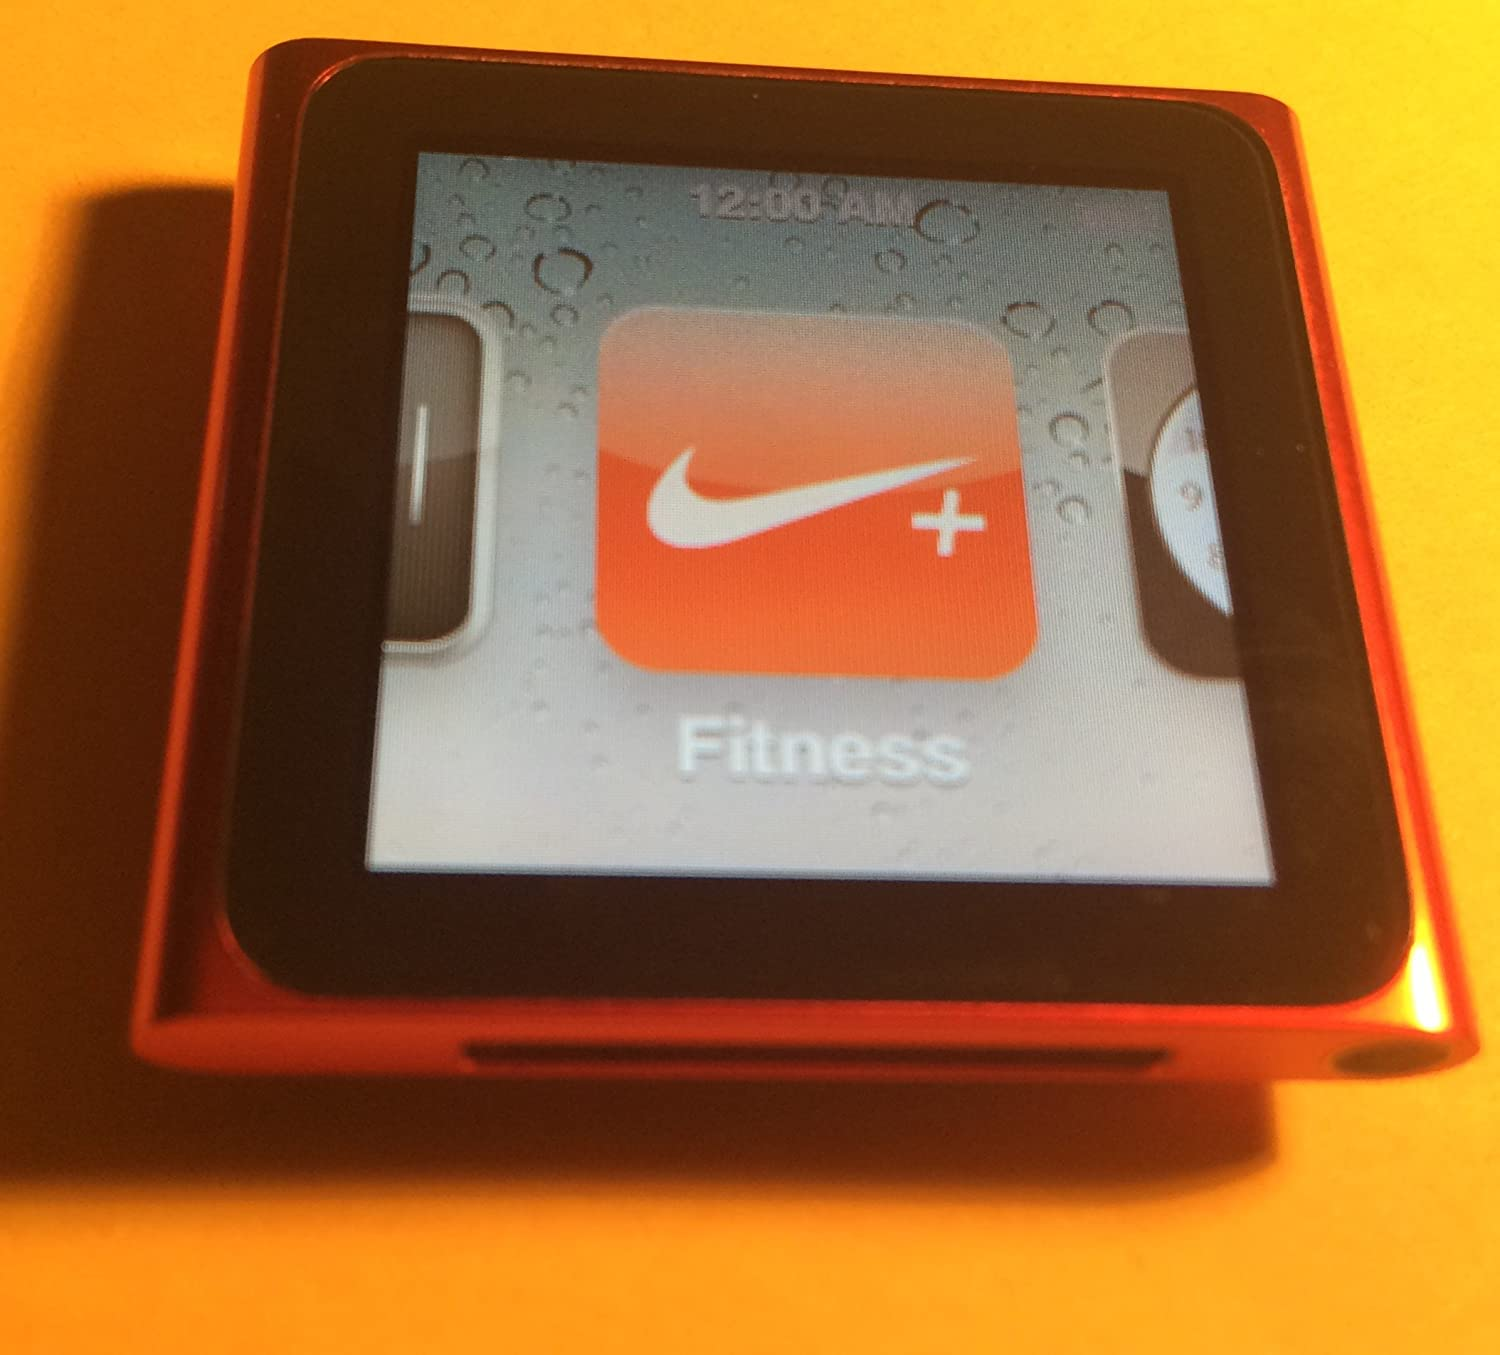 Apple iPod Nano 8GB RED (6th generation) - Special Edition MC693LL/A apple ipod nano chromatic 4g 8gb